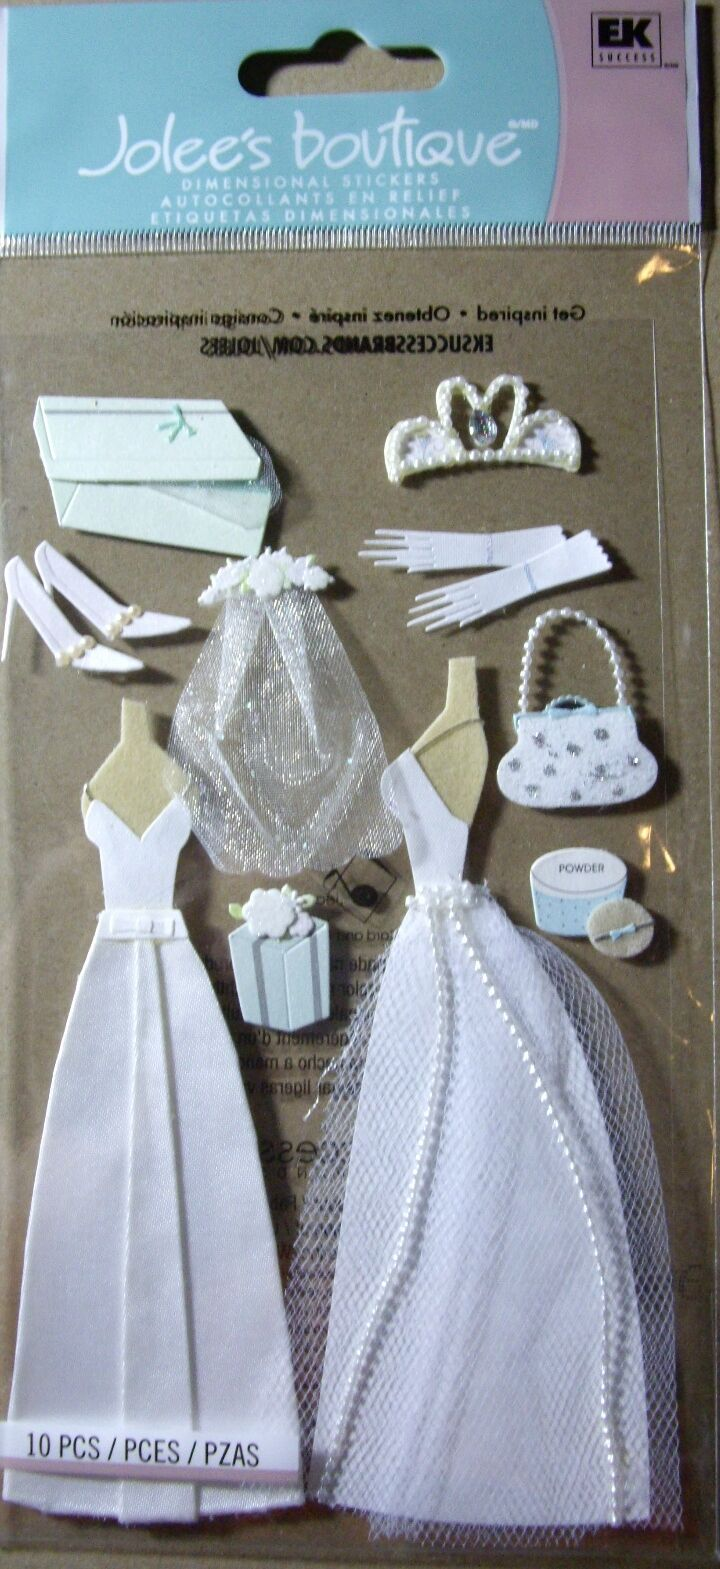 NEW 10 Pc WEDDING GOWN Tiara Veil Shoe Gown Gloves Bridal JOLEES 3DStickers